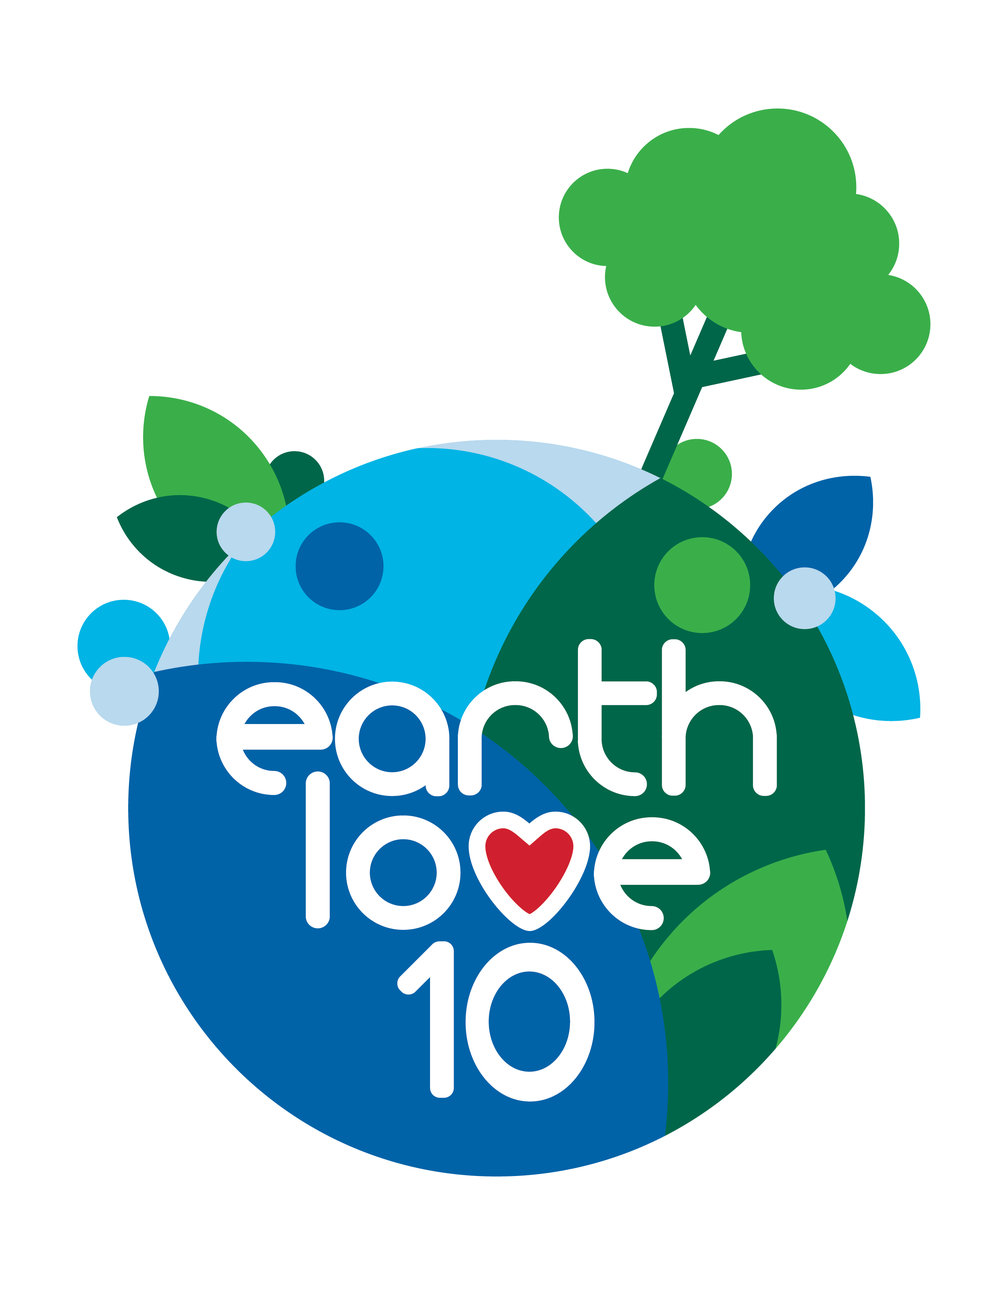 Earth Love 10 layer 03_Full Logo.jpg